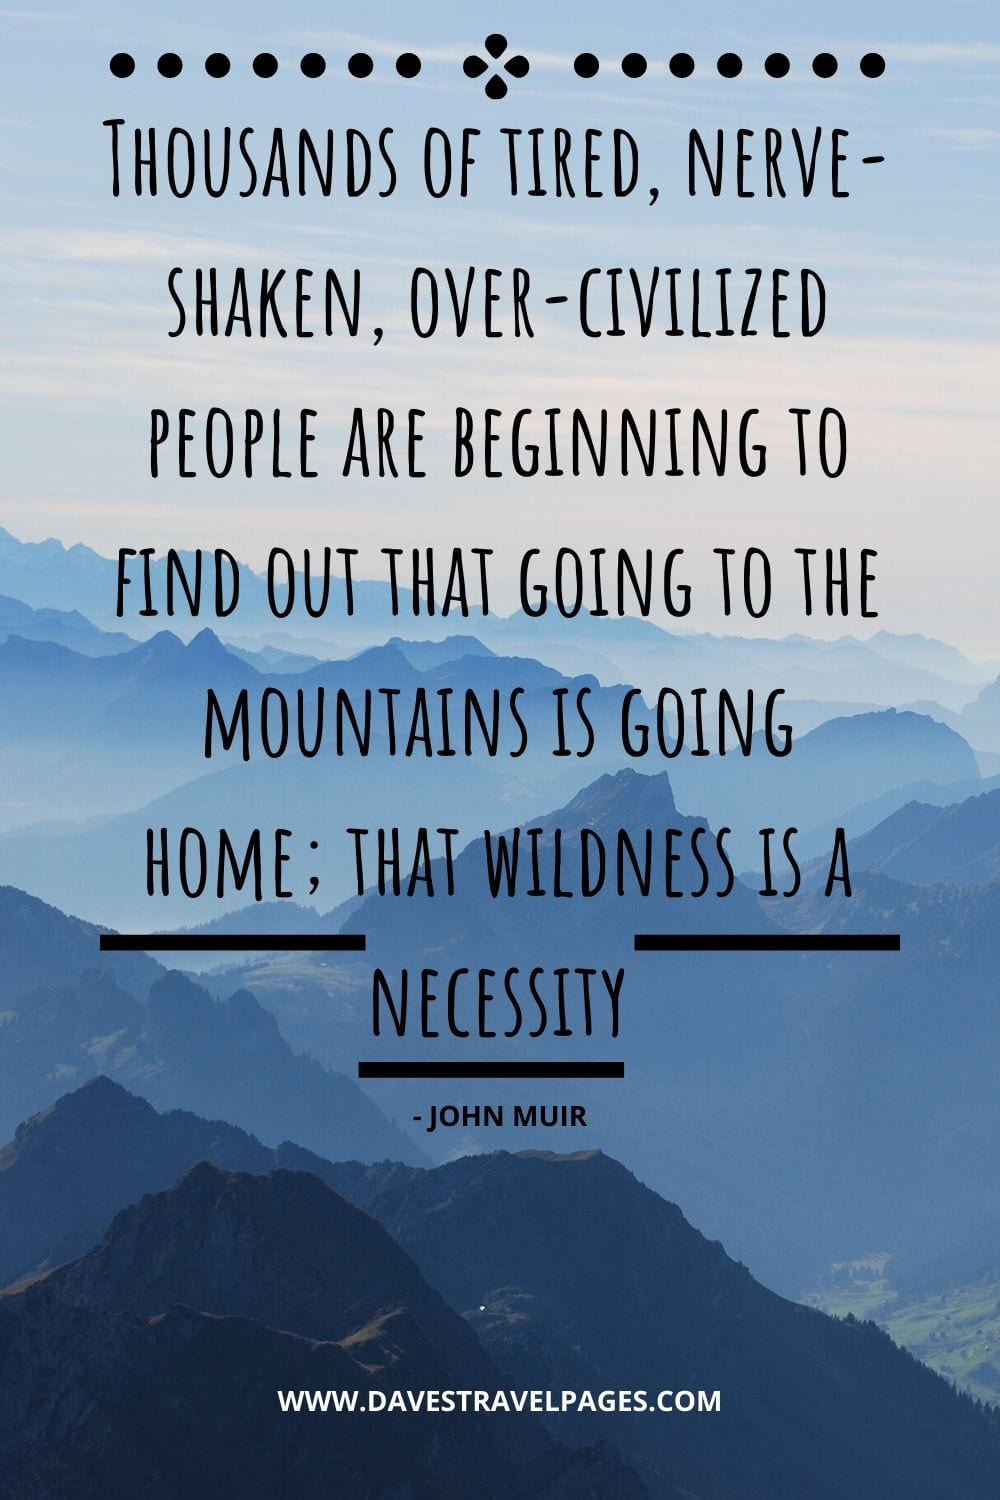 John Muir Quotes: Thousands of tired, nerve-shaken, over-civilized people are beginning to find out that going to the mountains is going home; that wildness is a necessity - John Muir